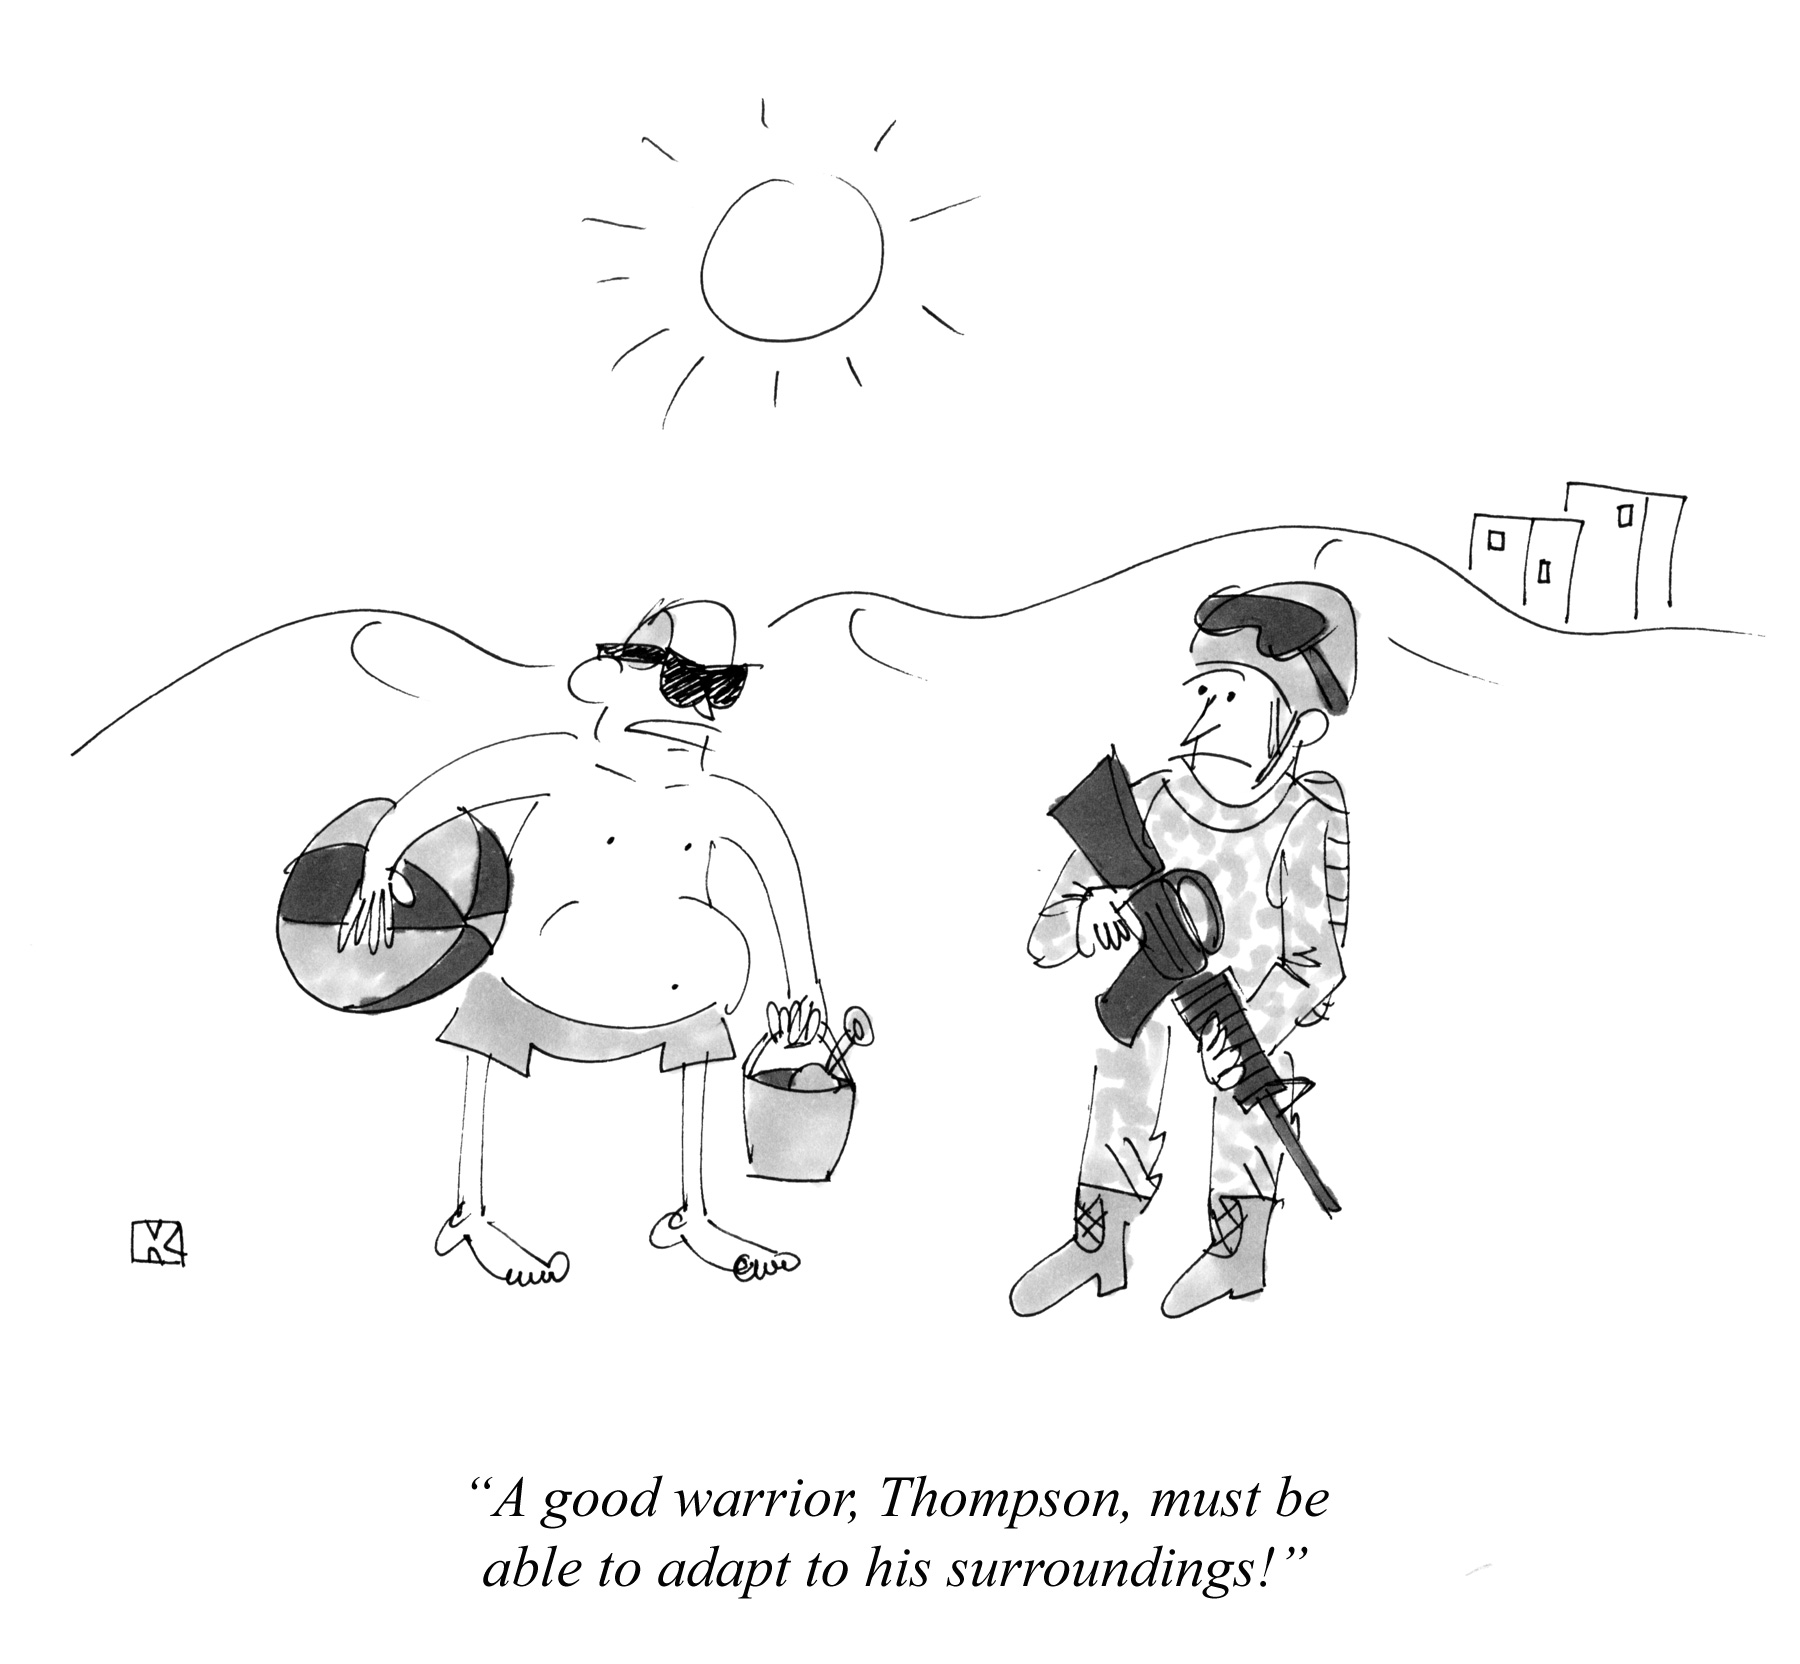 A good warrior, Thompson, must be able to adapt to his surroundings!